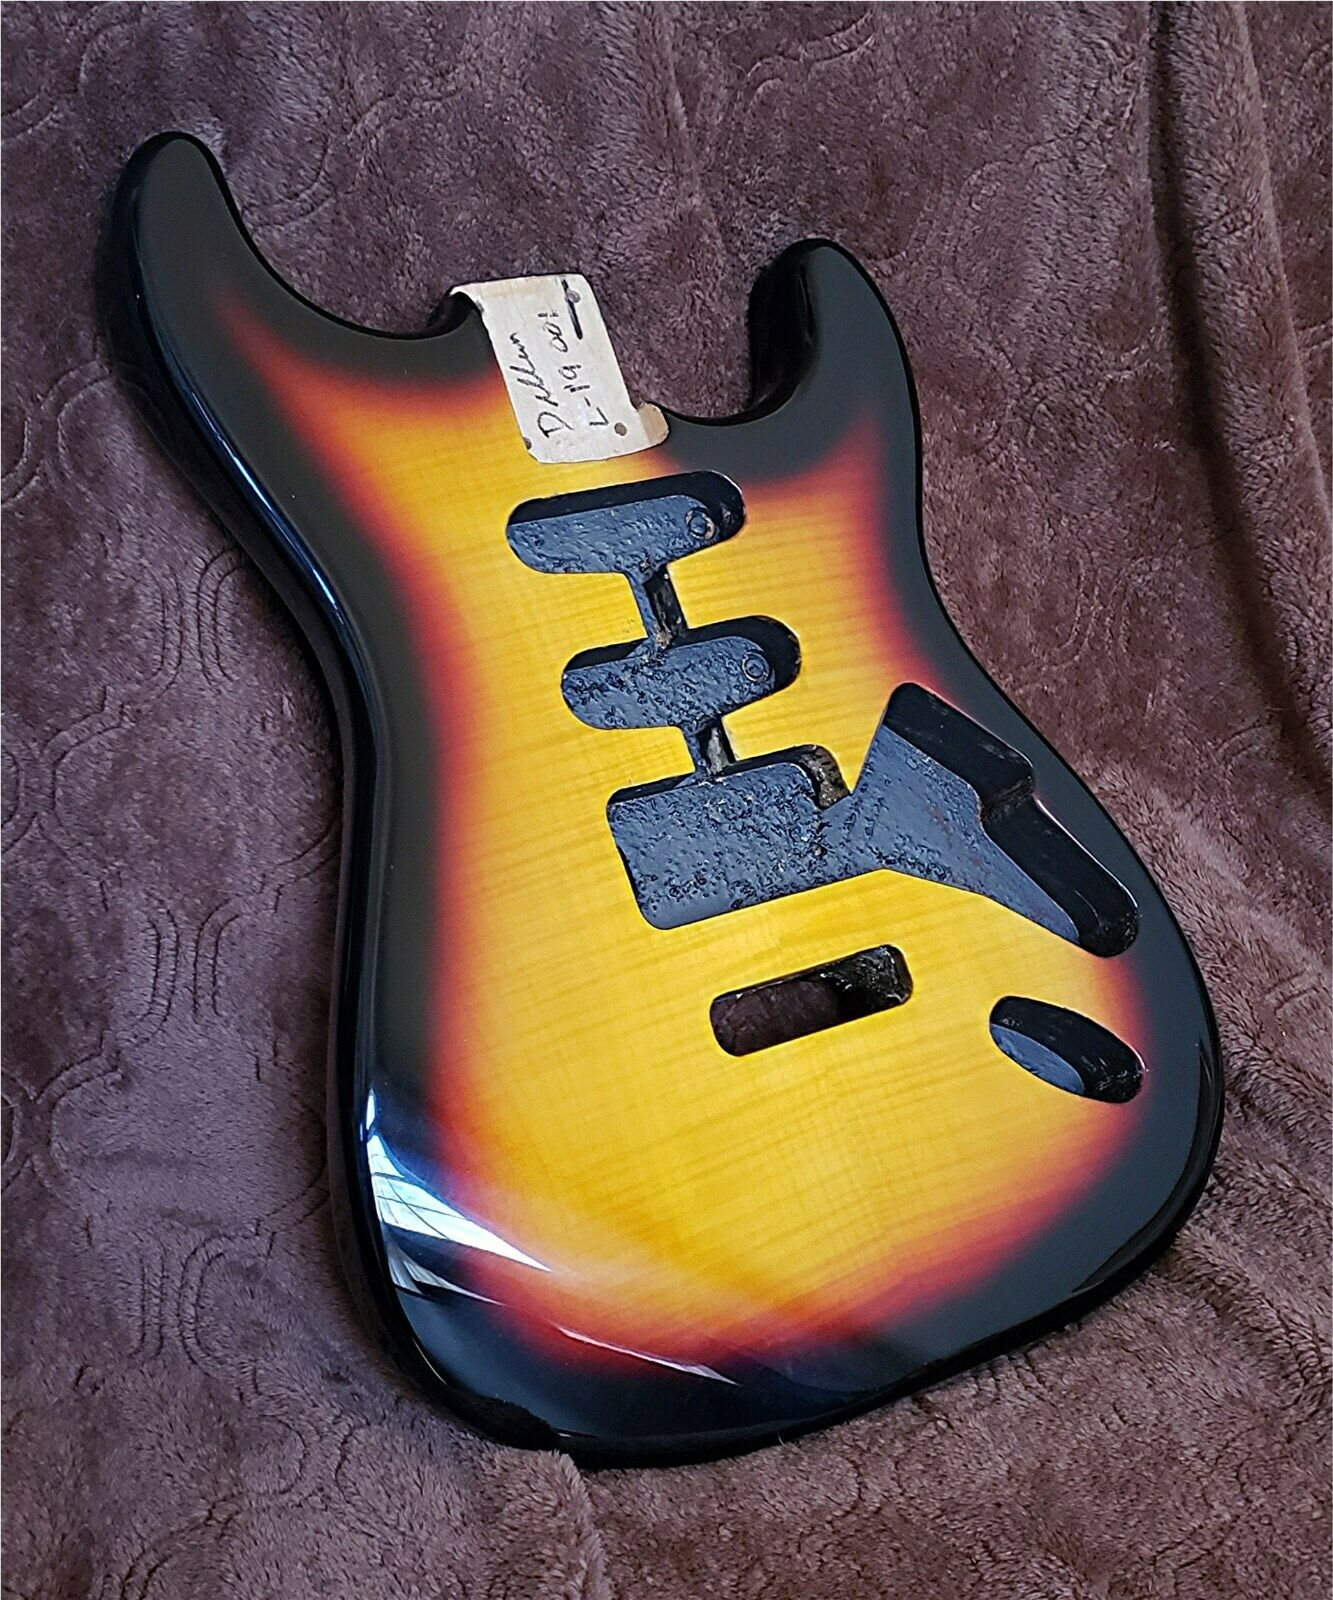 Dillion 2 piece solid Alder Strat body in 3 tone sunburst flame maple